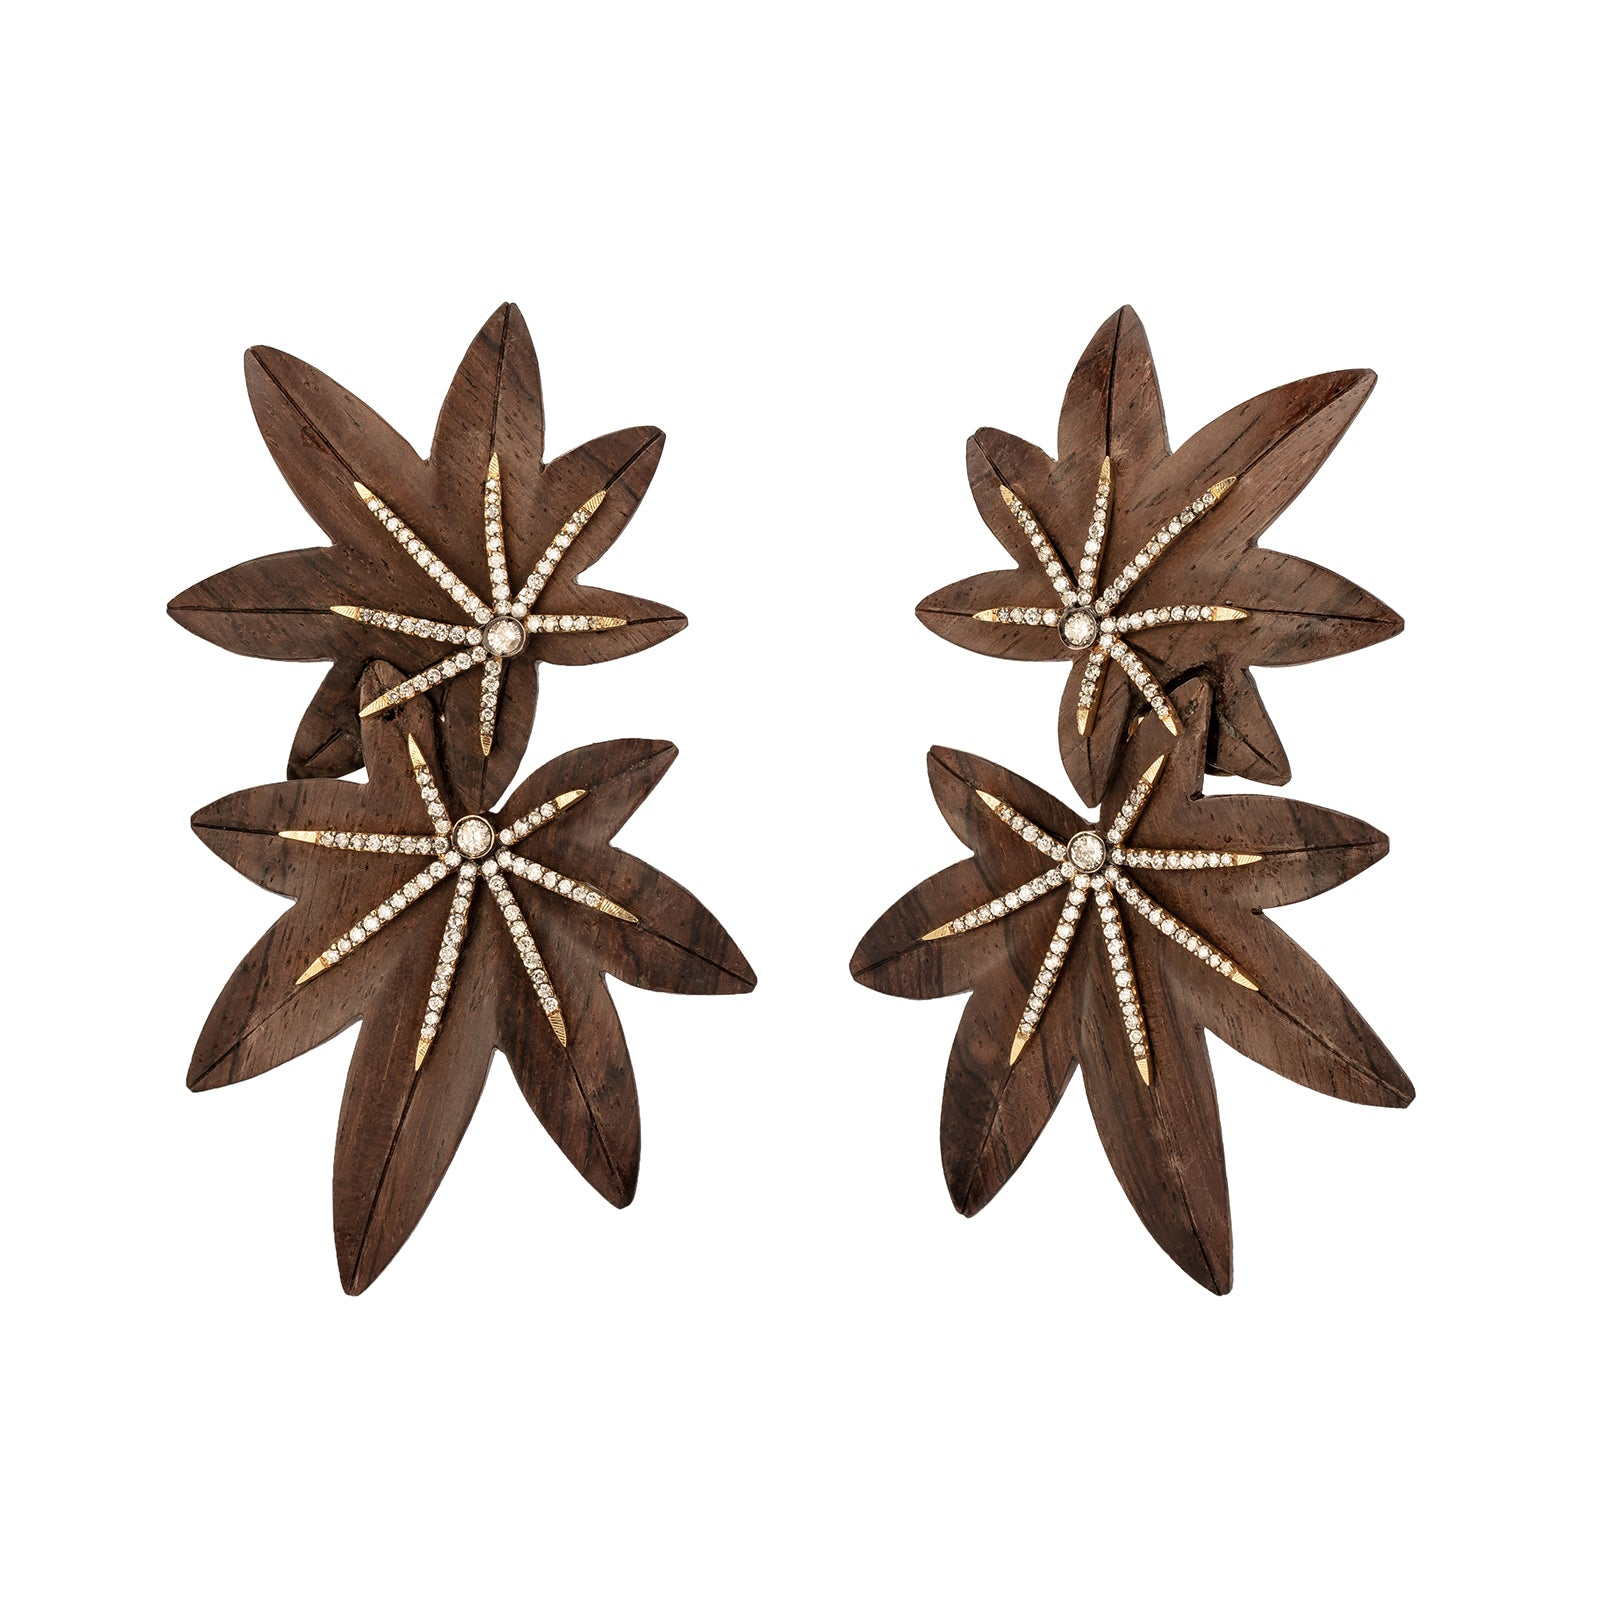 Silvia Furmanovich Obi Japanese Maple Leaf Earrings - Earrings - Broken English Jewelry